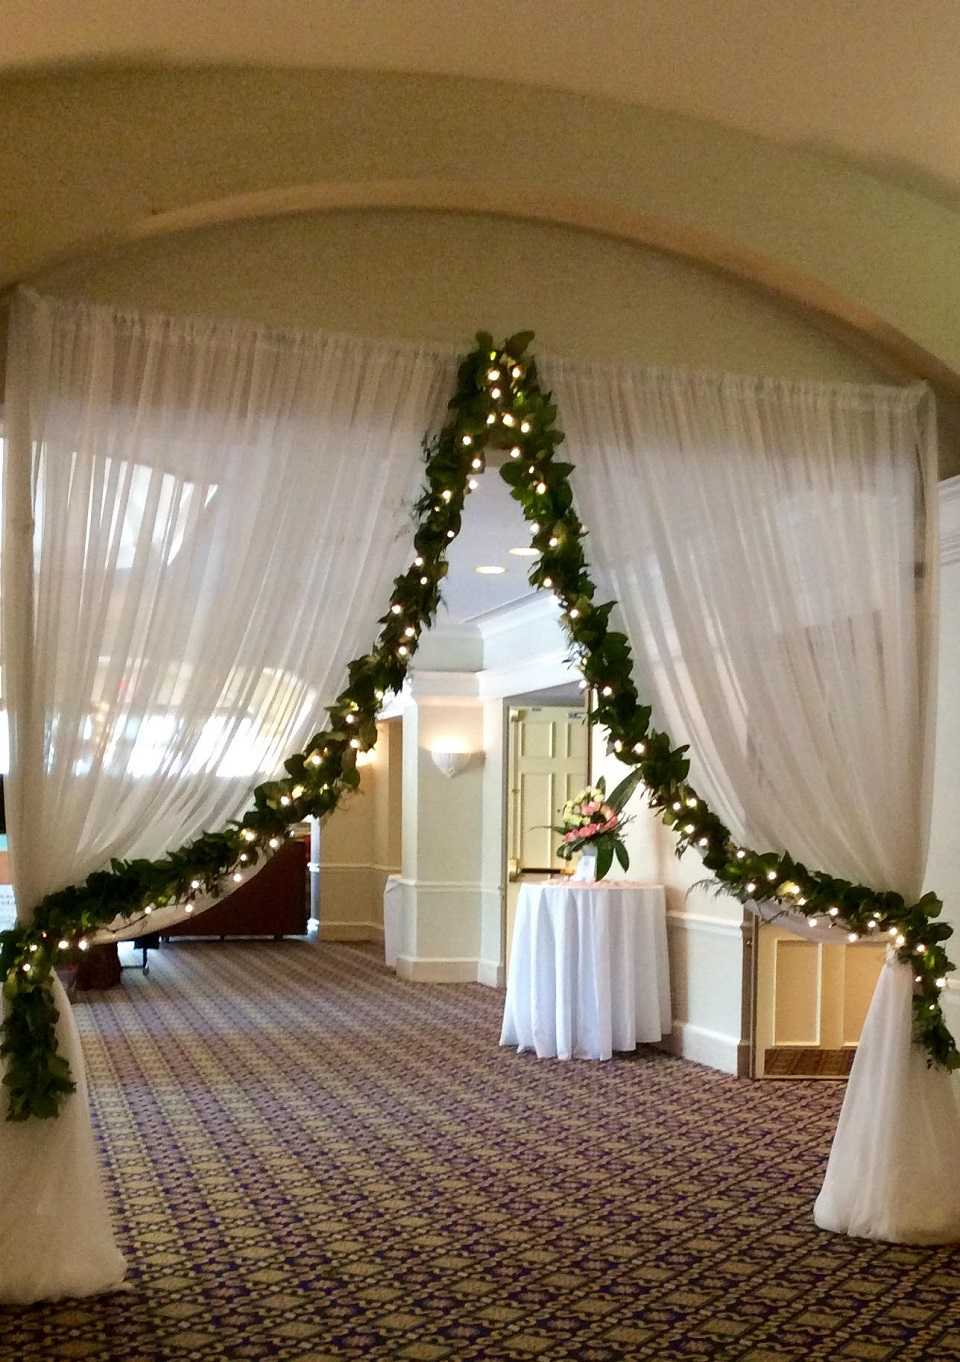 Entrance to Wedding Expo at Marriott Hotel South Point in Jacksonville, Florida